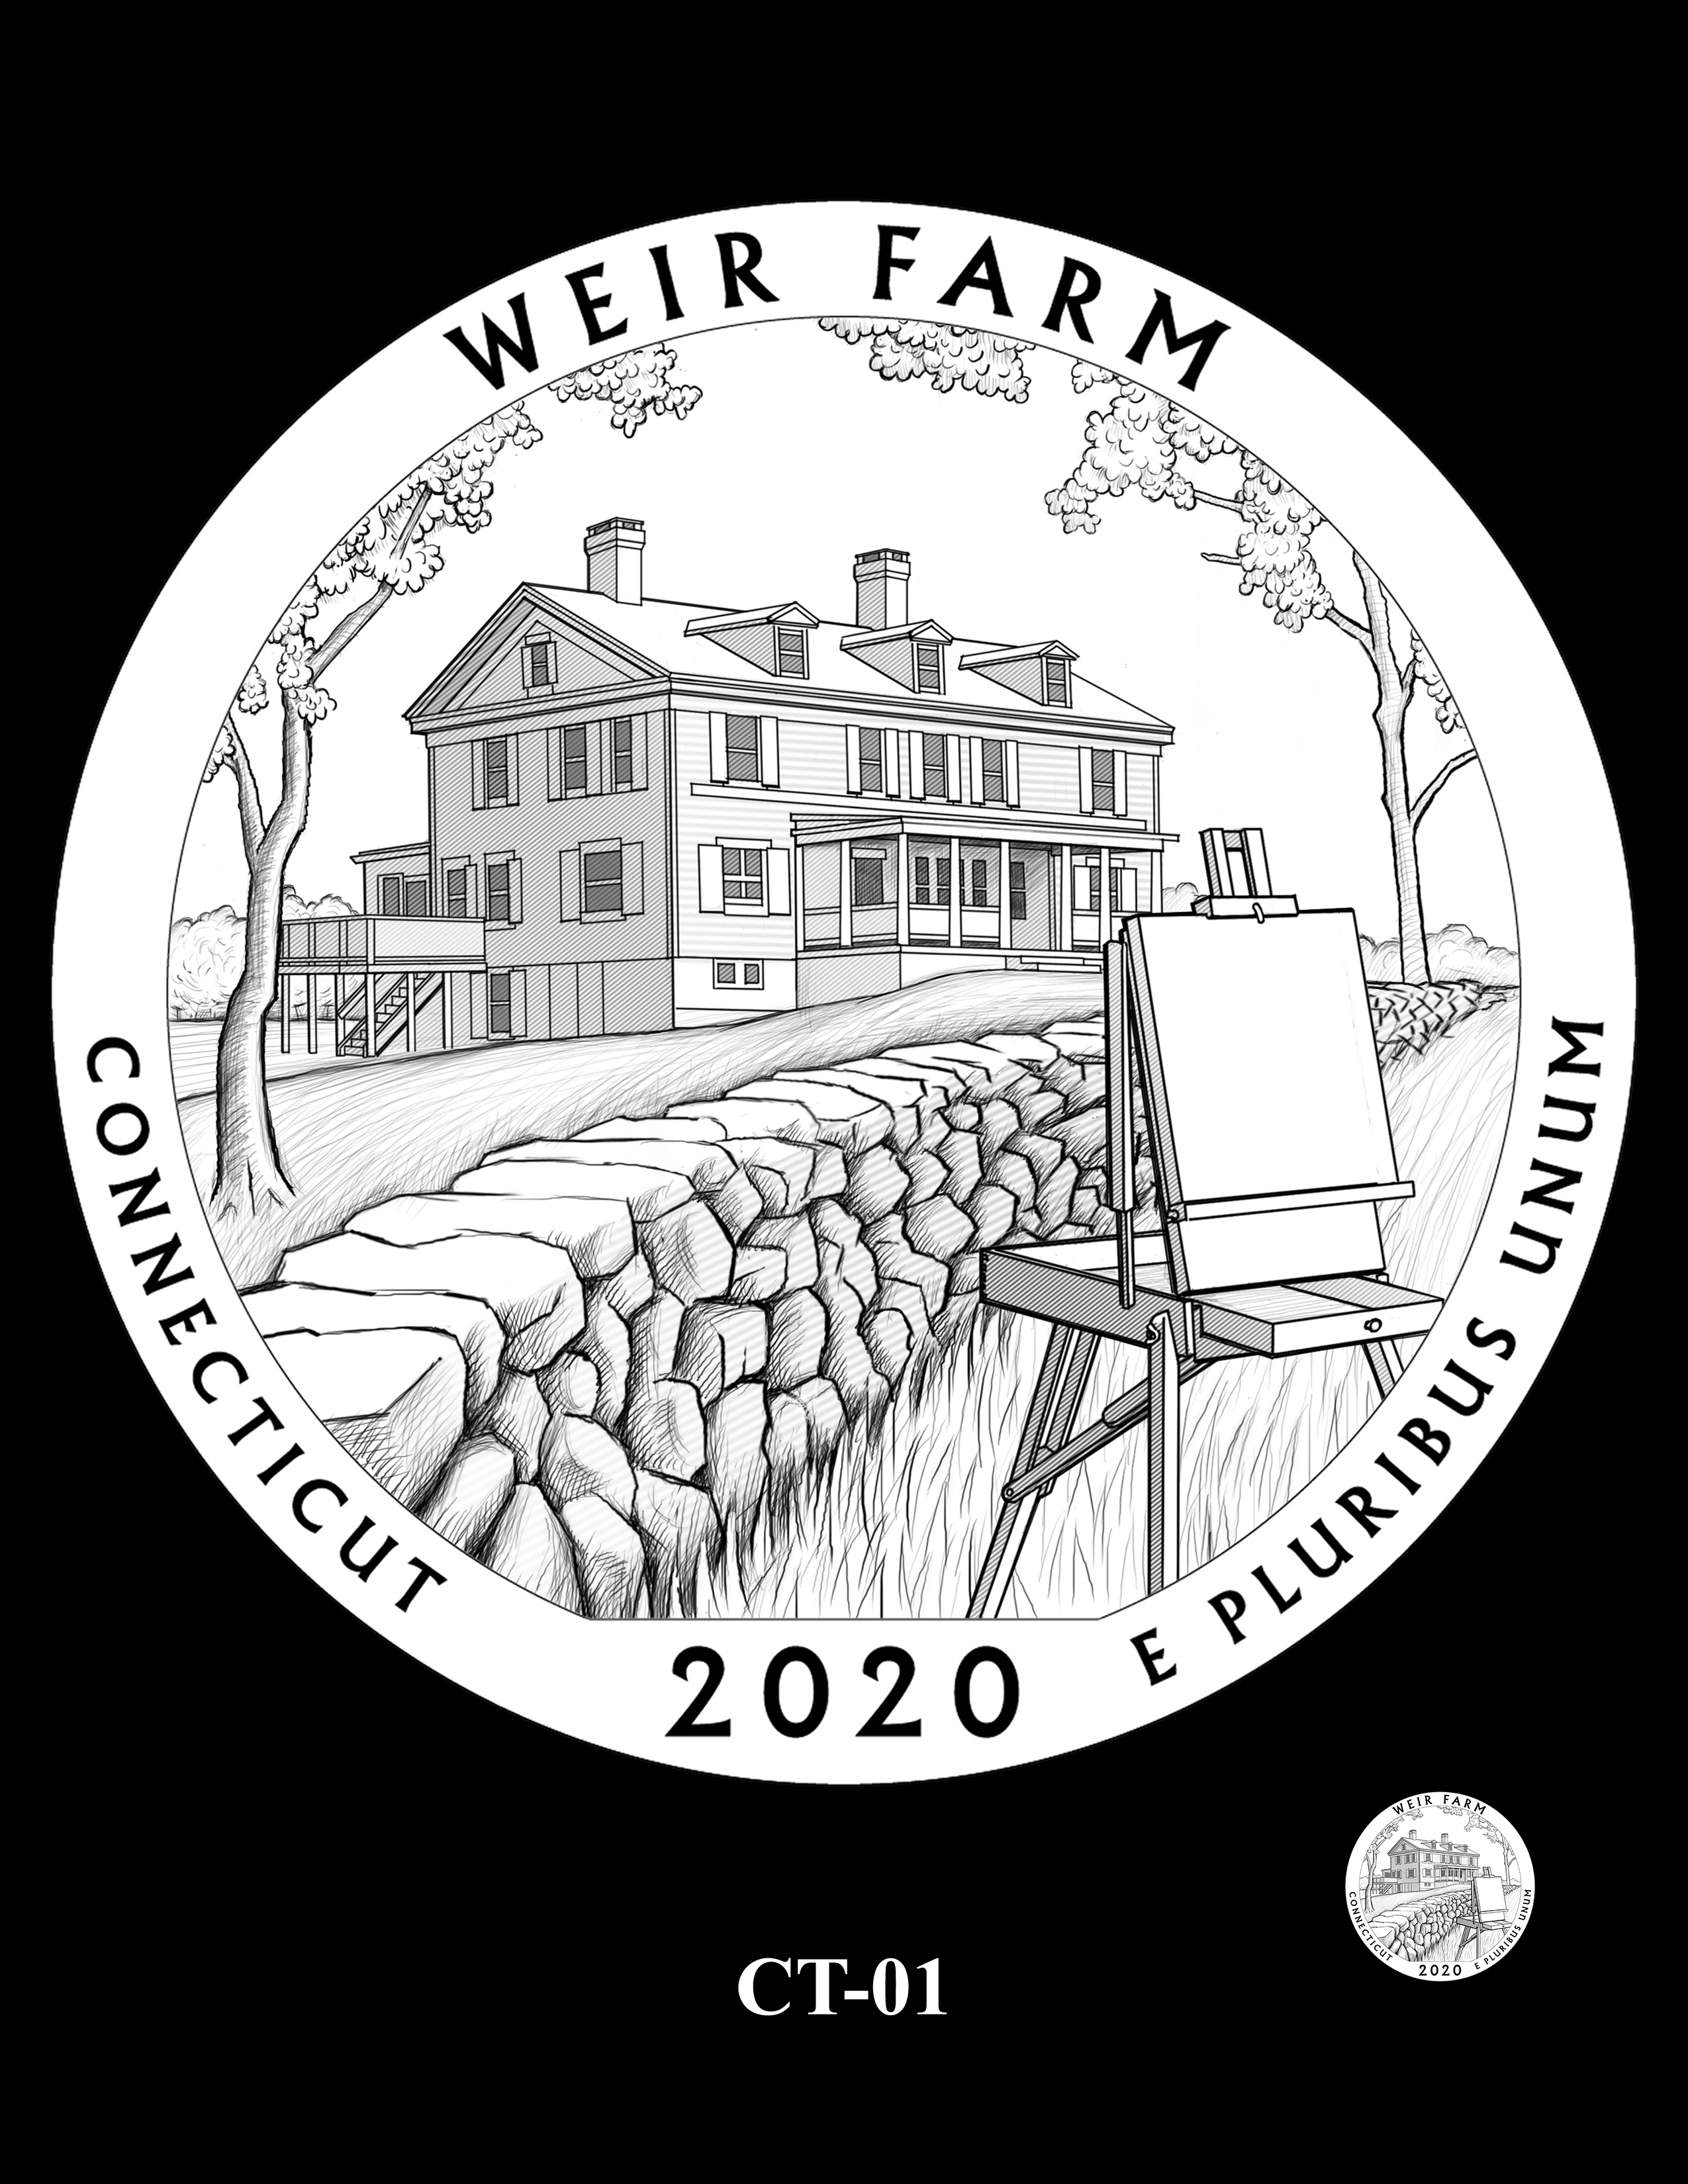 CT-01 -- 2020 America the Beautiful Quarters® Program